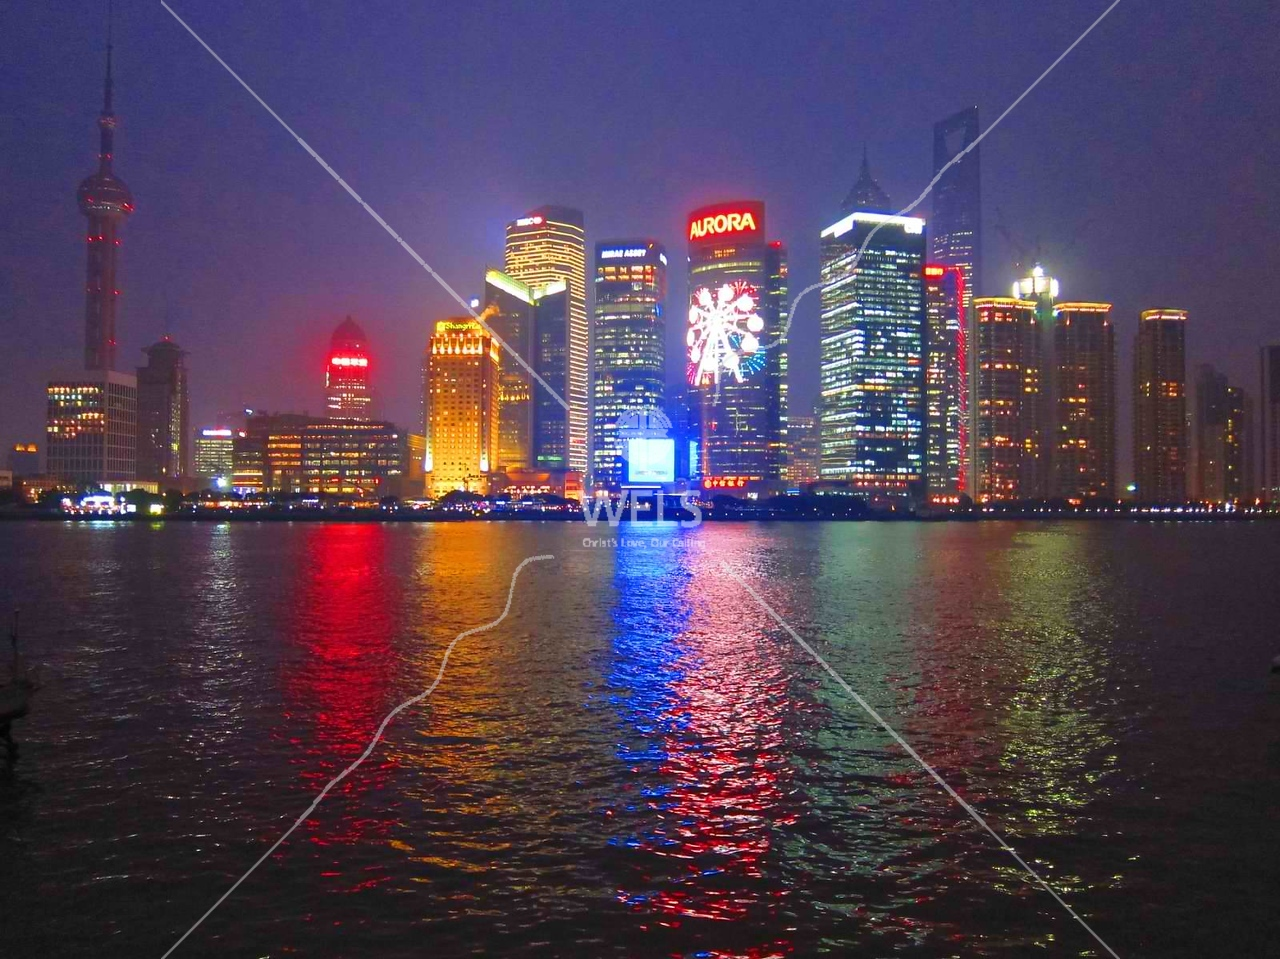 Night view of Pudong waterfront, Shanghai by kstellick